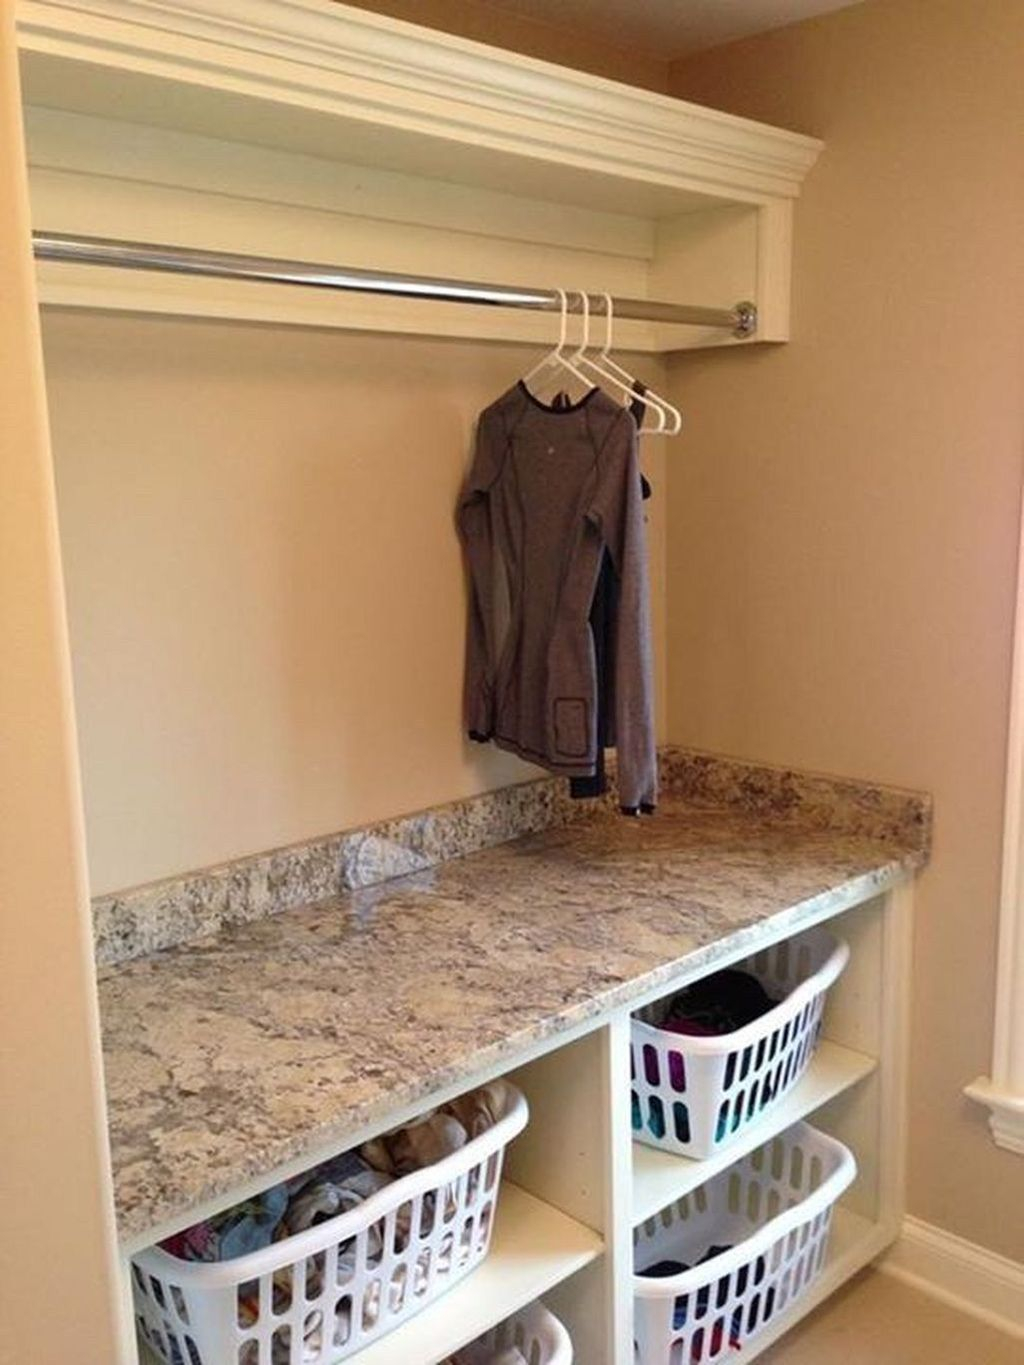 Favored Laundry Room Organization Ideas To Try 26